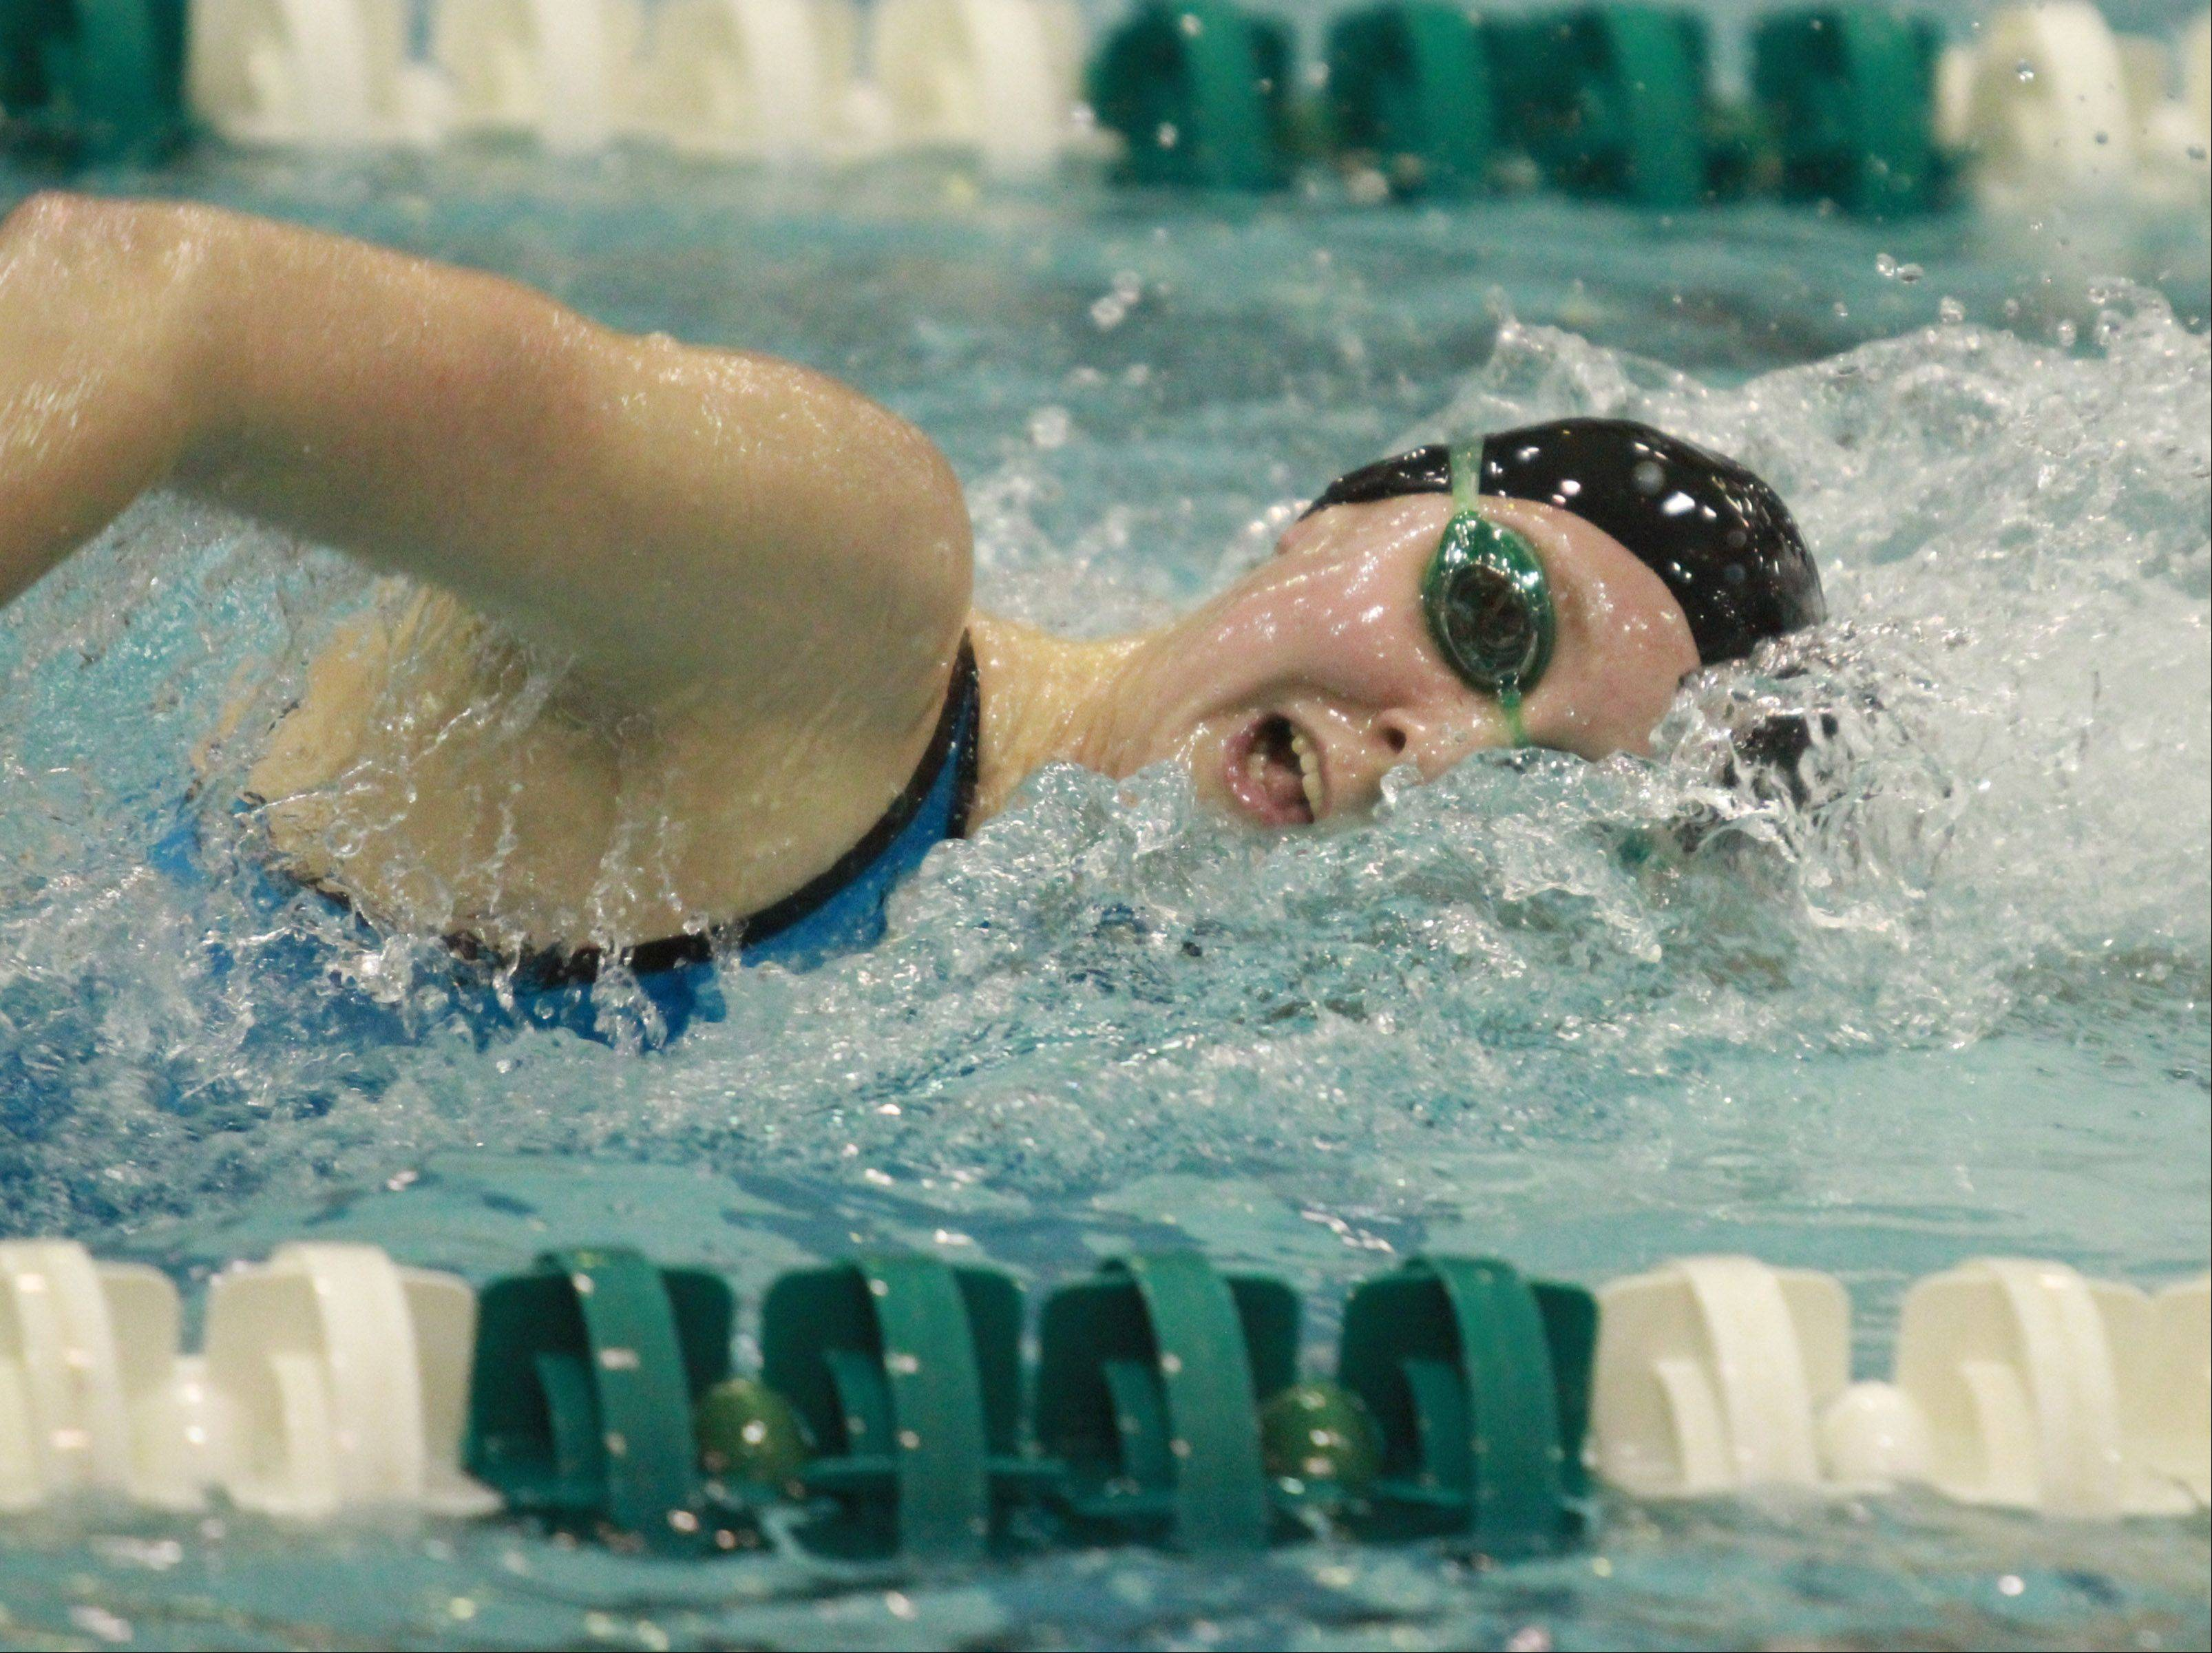 Barrington's Jacobsen breaks state record in 200 free